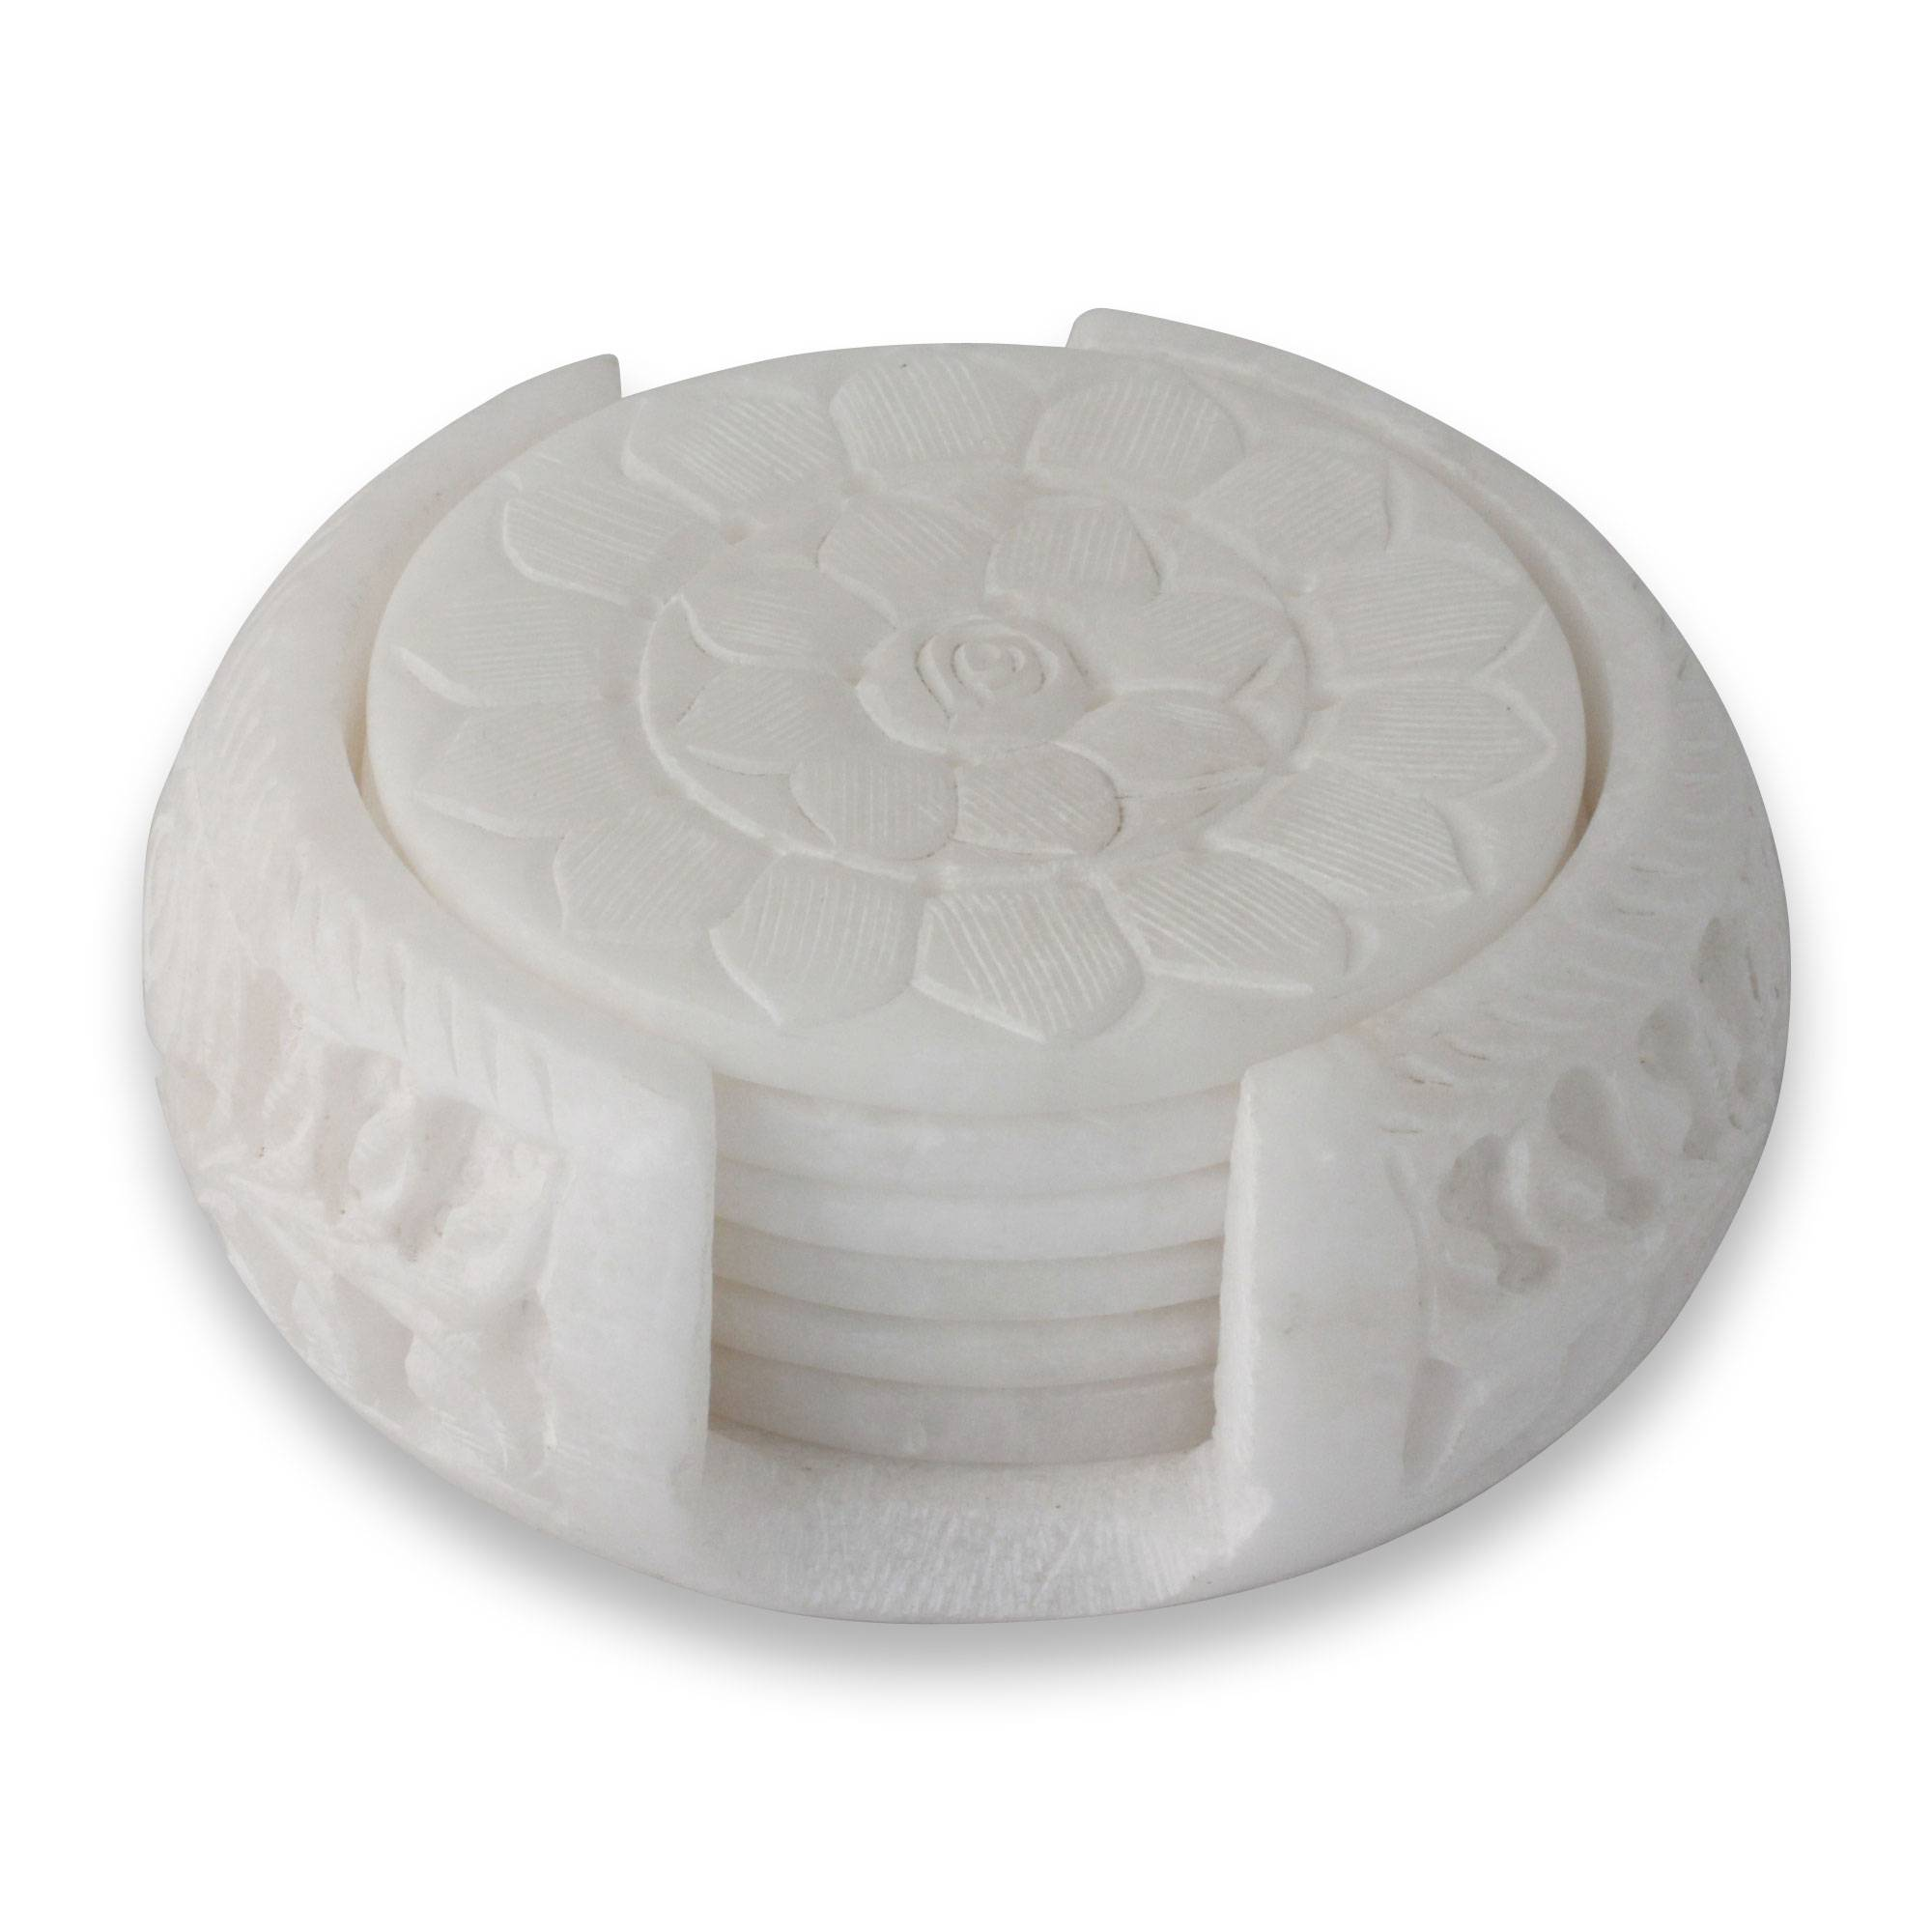 Peaceful Blossom Hand Carved White Marble Coasters And Holder Set Of 6